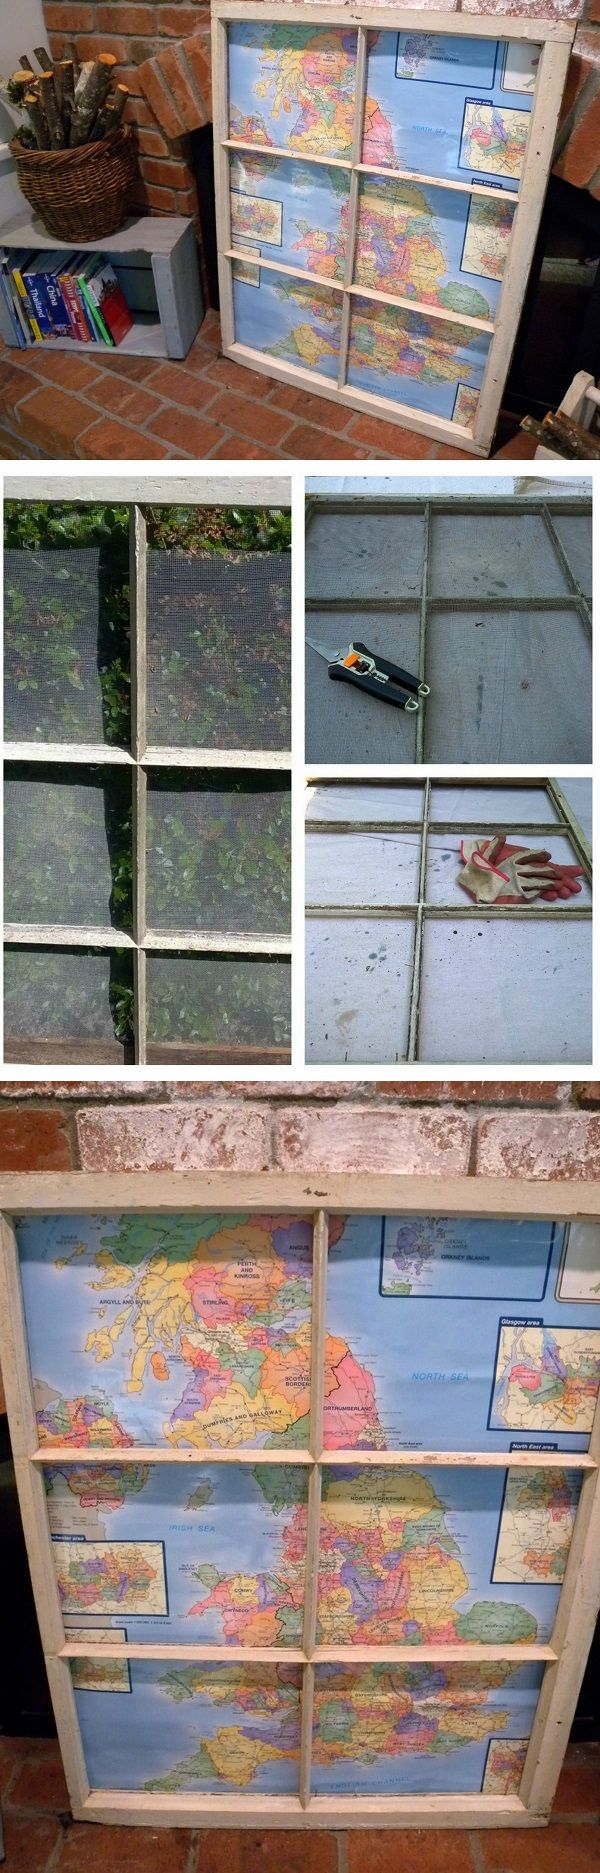 Diy old window decor   diy amazing old window projects  office decorations window and